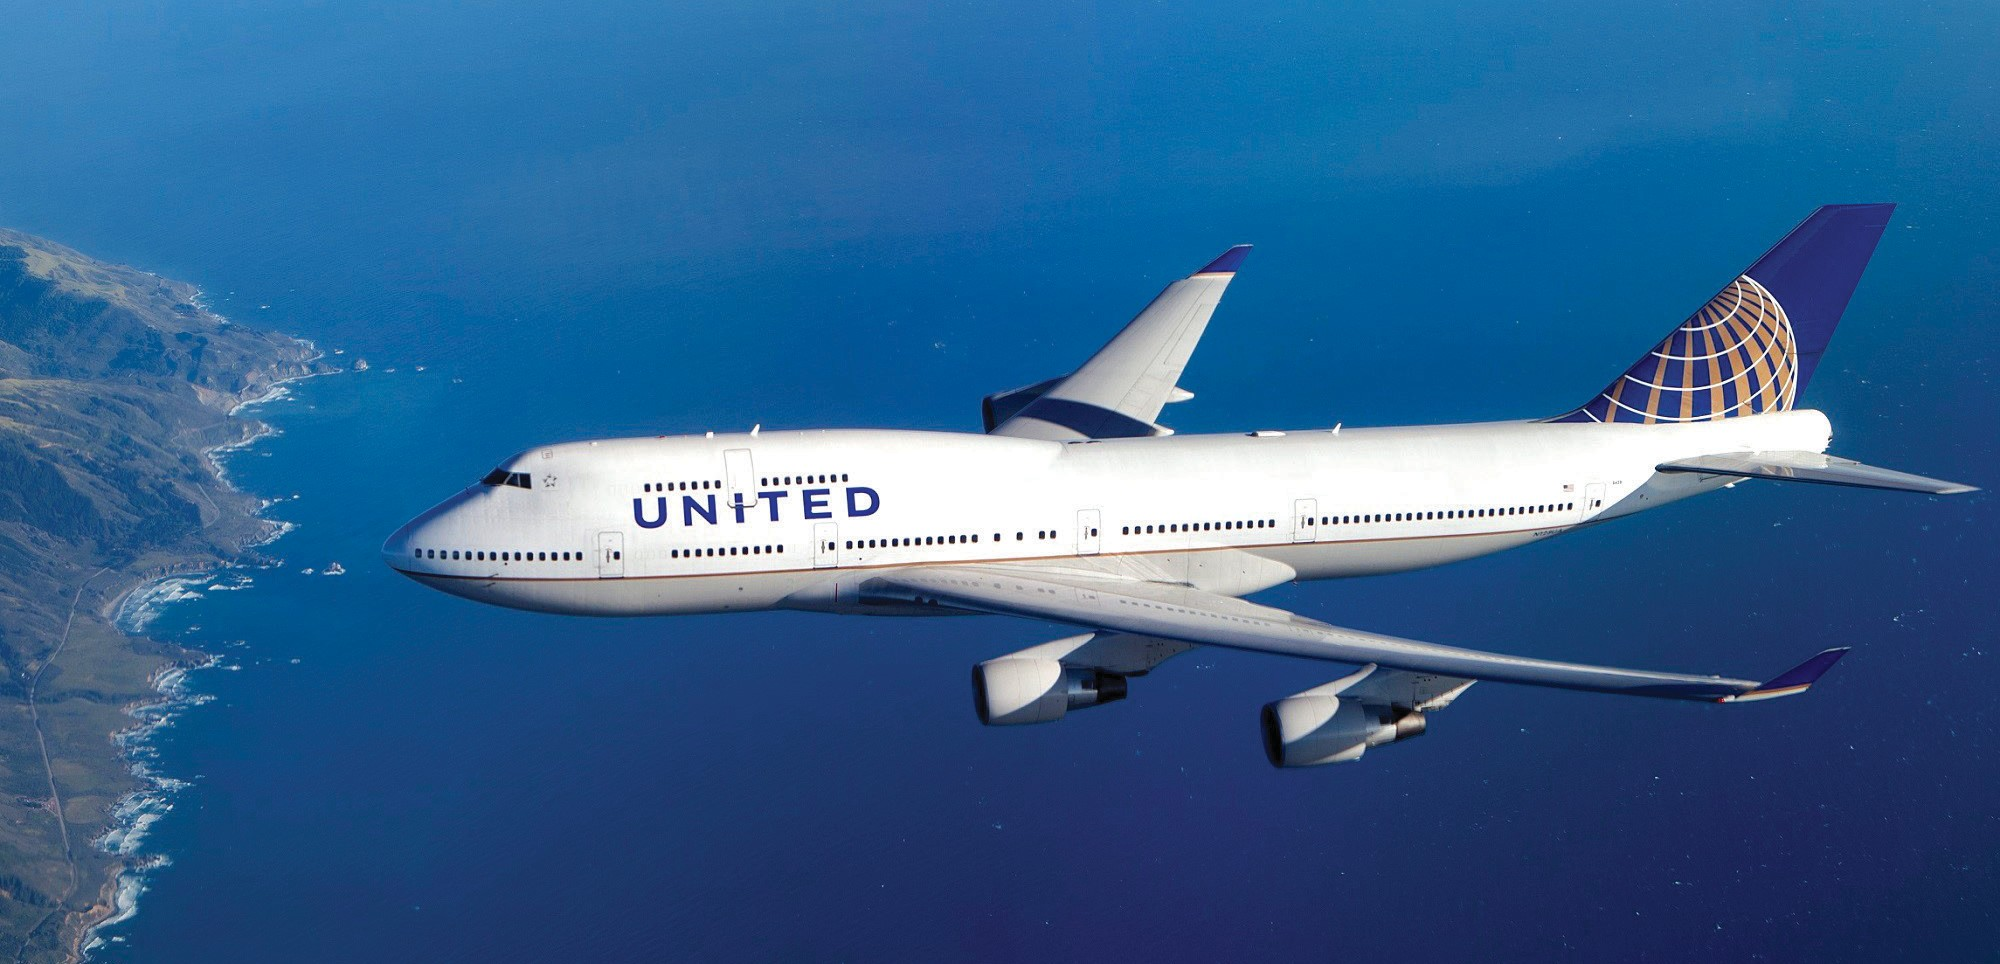 END OF AN ERA—United Airlines is retiring its 747s with a final flight from San Francisco to Honolulu, the route the company's first 747 took more than 47 years ago. Courtesy of United Airlines